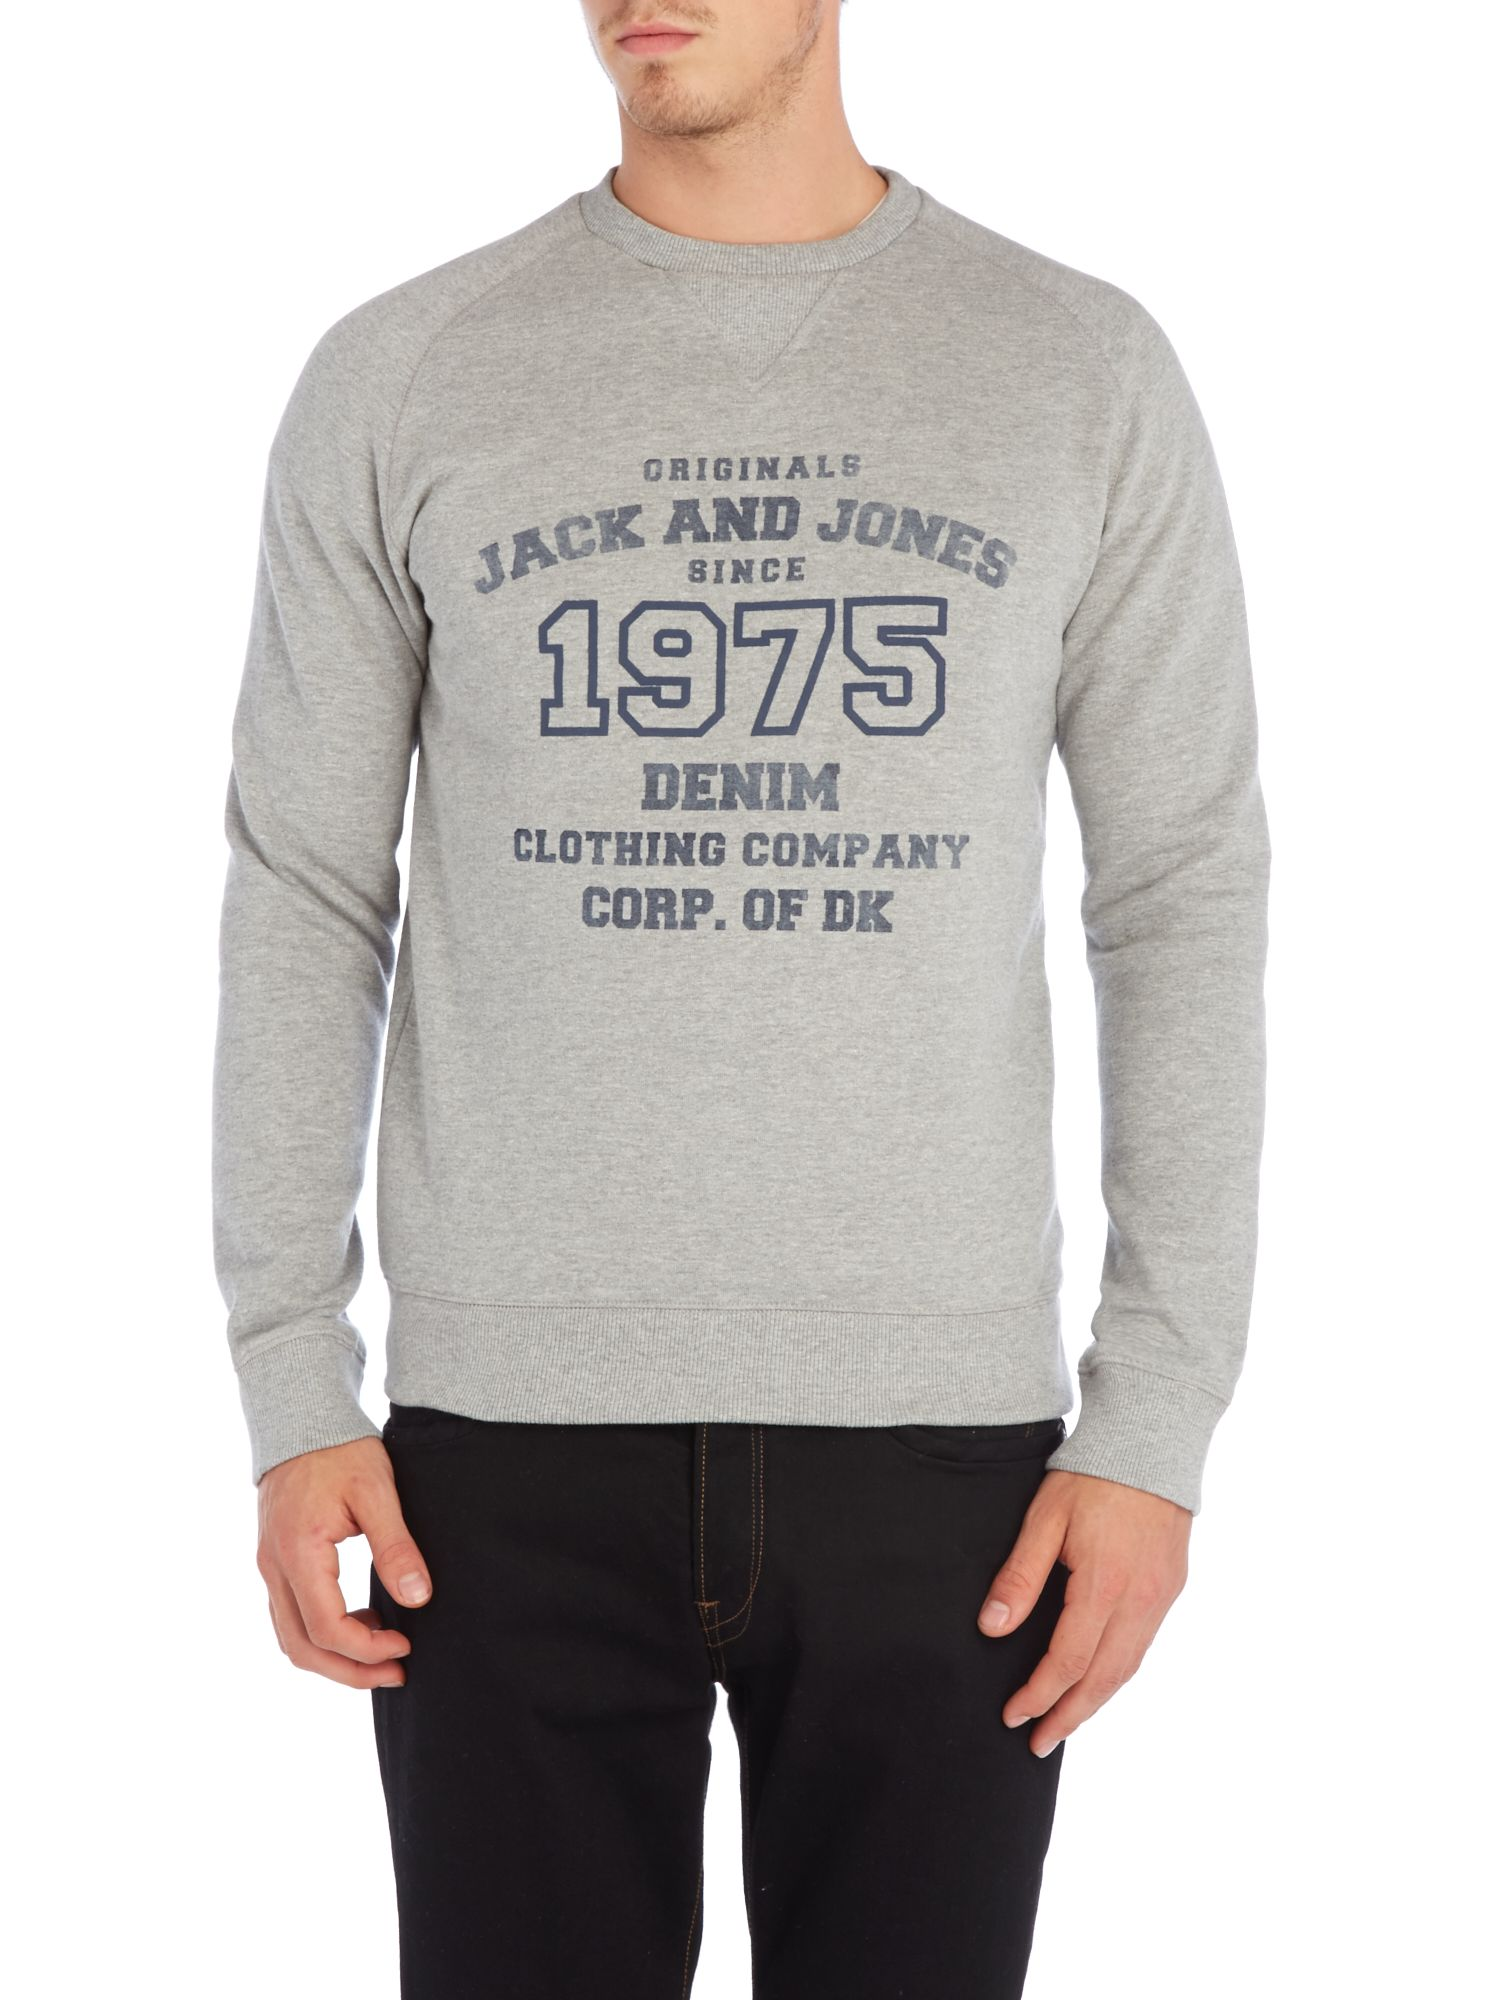 1975 denim crew neck sweatshirt